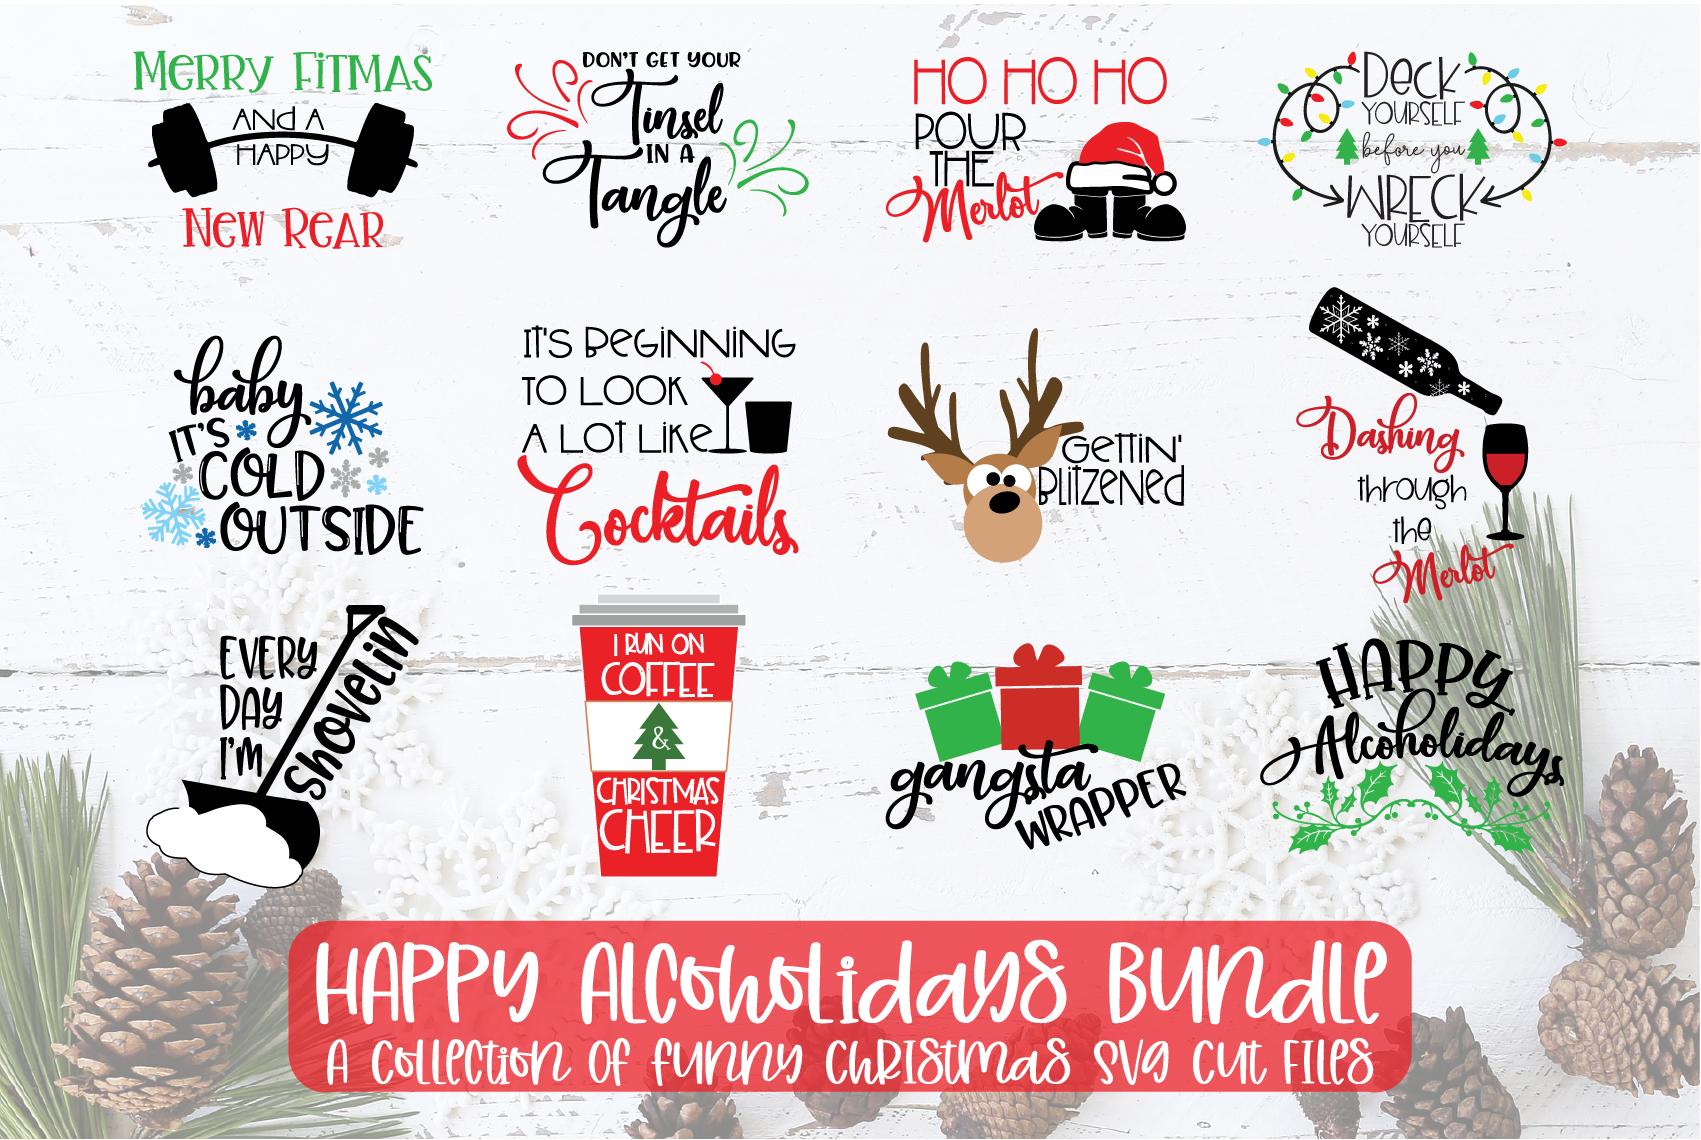 Download Free Happy Alcoholidays Bundle Graphic By Sheryl Holst Creative Fabrica for Cricut Explore, Silhouette and other cutting machines.